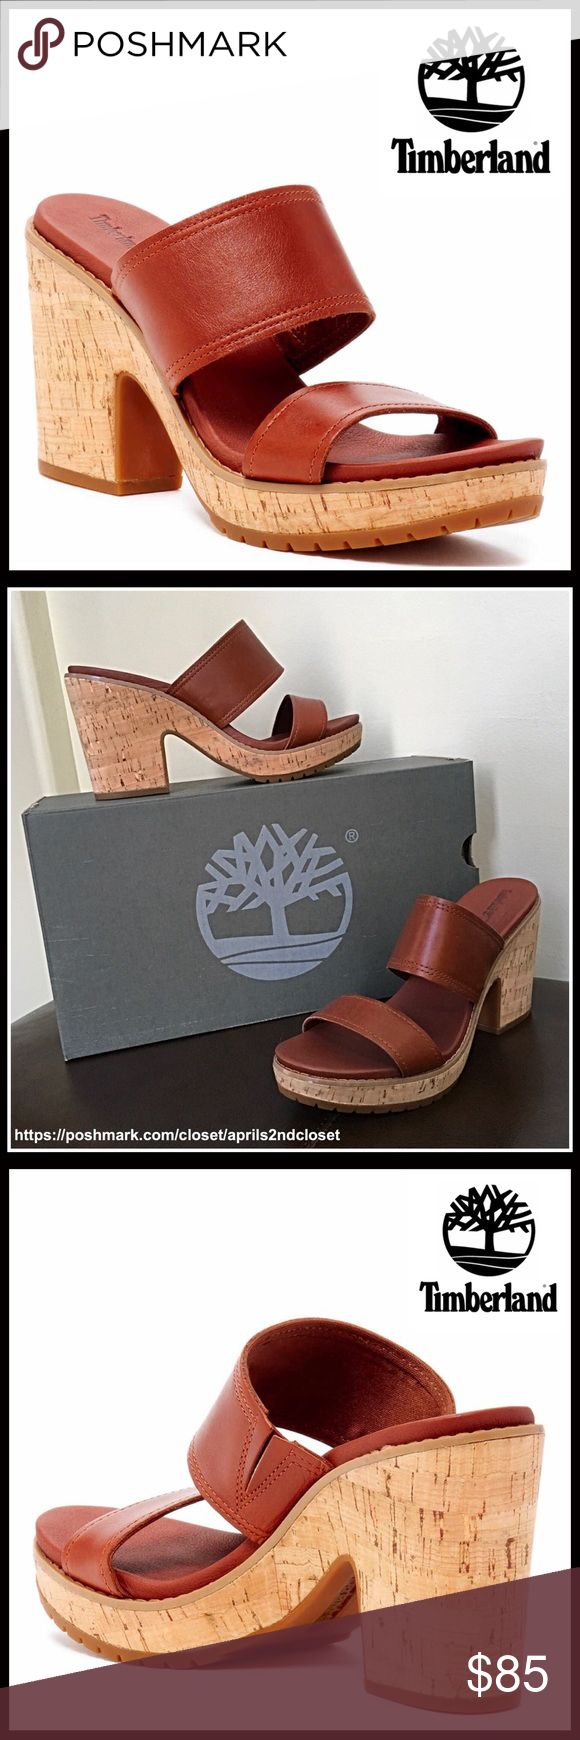 """⭐️⭐️ TIMBERLAND LEATHER PLATFORM SANDALS 💟NEW WITH TAGS💟 RETAIL PRICE: $120  TIMBERLAND LEATHER PLATFORM SANDALS   * Open toe; Double strap vamp w/stretch-to-fit inset goring  * Lightly cushioned footbed  * Genuine leather construction  * Approx. 3.75"""" high heels & 1"""" platform  * Textured grip sole, cork wooden look heel, & slip-on construction   * True to size    Material-Leather upper, Manmade sole  Color: Brown , tan  Item# 🚫No Trades🚫 ✅ Offers Considered ✅ SEARCH# cognac mule Clog…"""